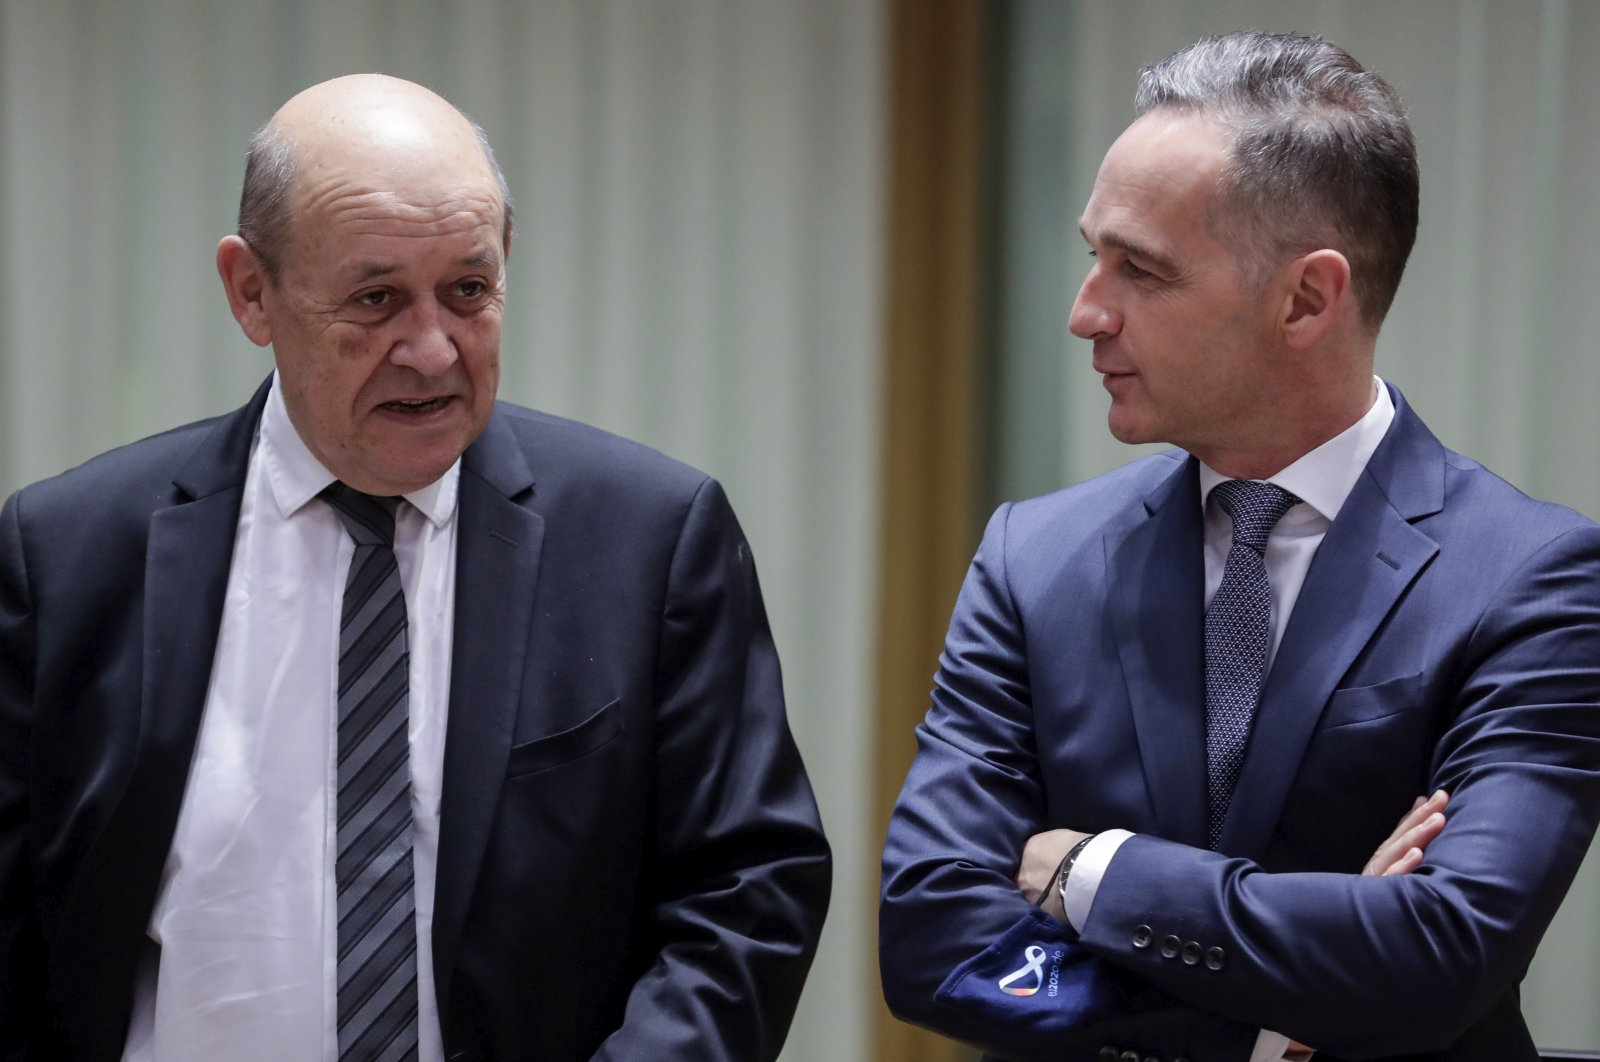 French Foreign Minister Jean-Yves Le Drian (L) speaks with German Foreign Minister Heiko Maas during a meeting of EU foreign ministers at the European Council building in Brussels, July 13, 2020. (Pool Photo via AP)